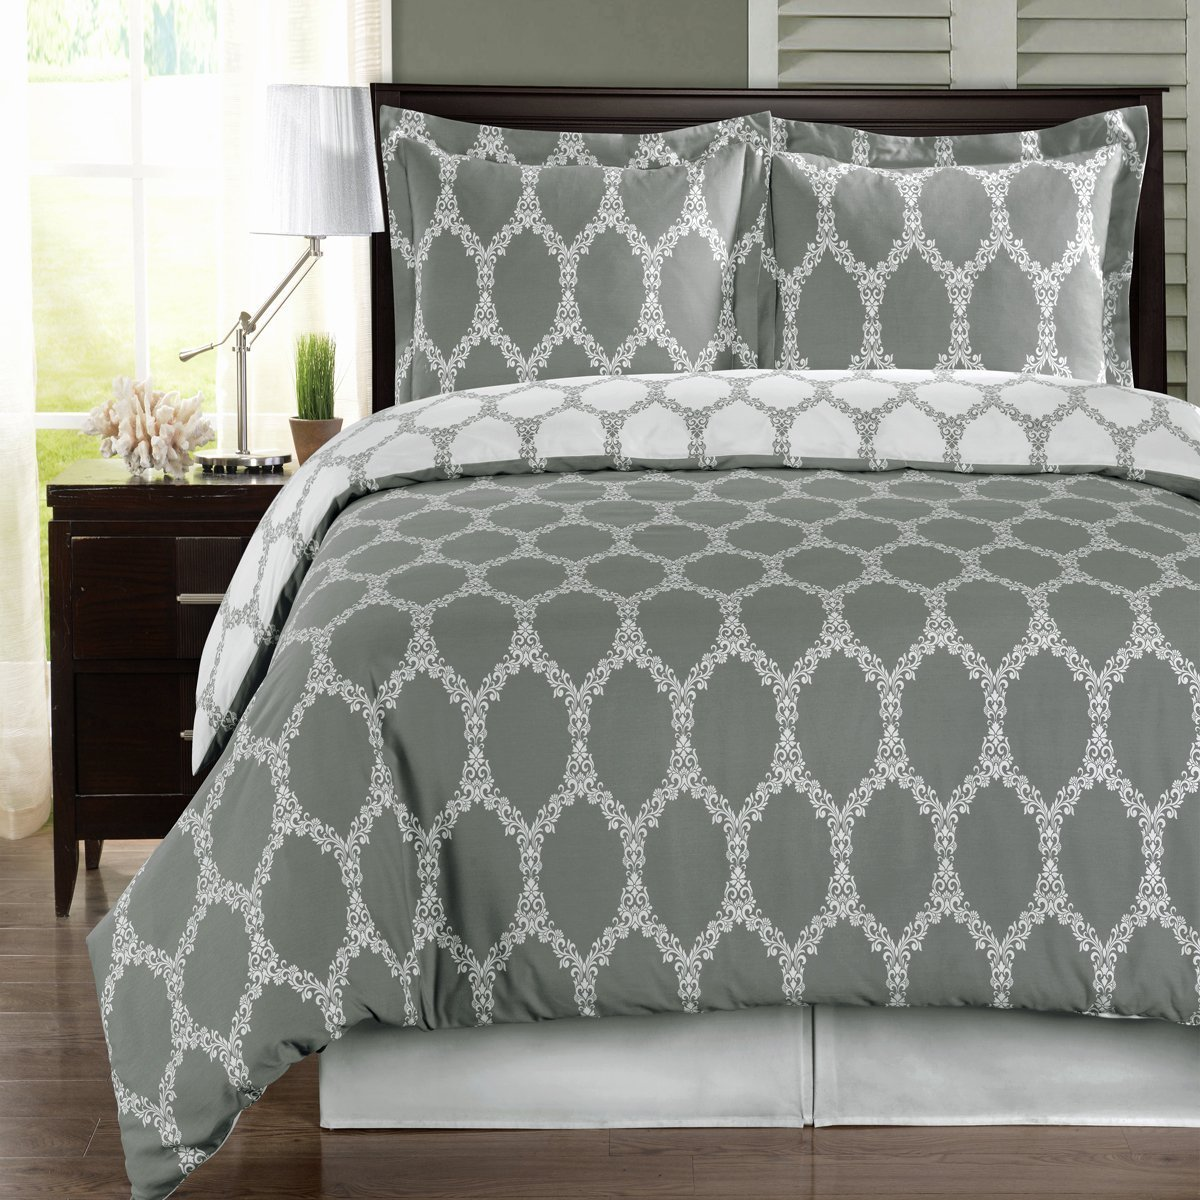 Gray and White Brooksfield 8-piece Queen Bed-in-a-Bag 100 % Egyptian Cotton 300 Thread Count by Royal Hotel Royal Hotel Bedding